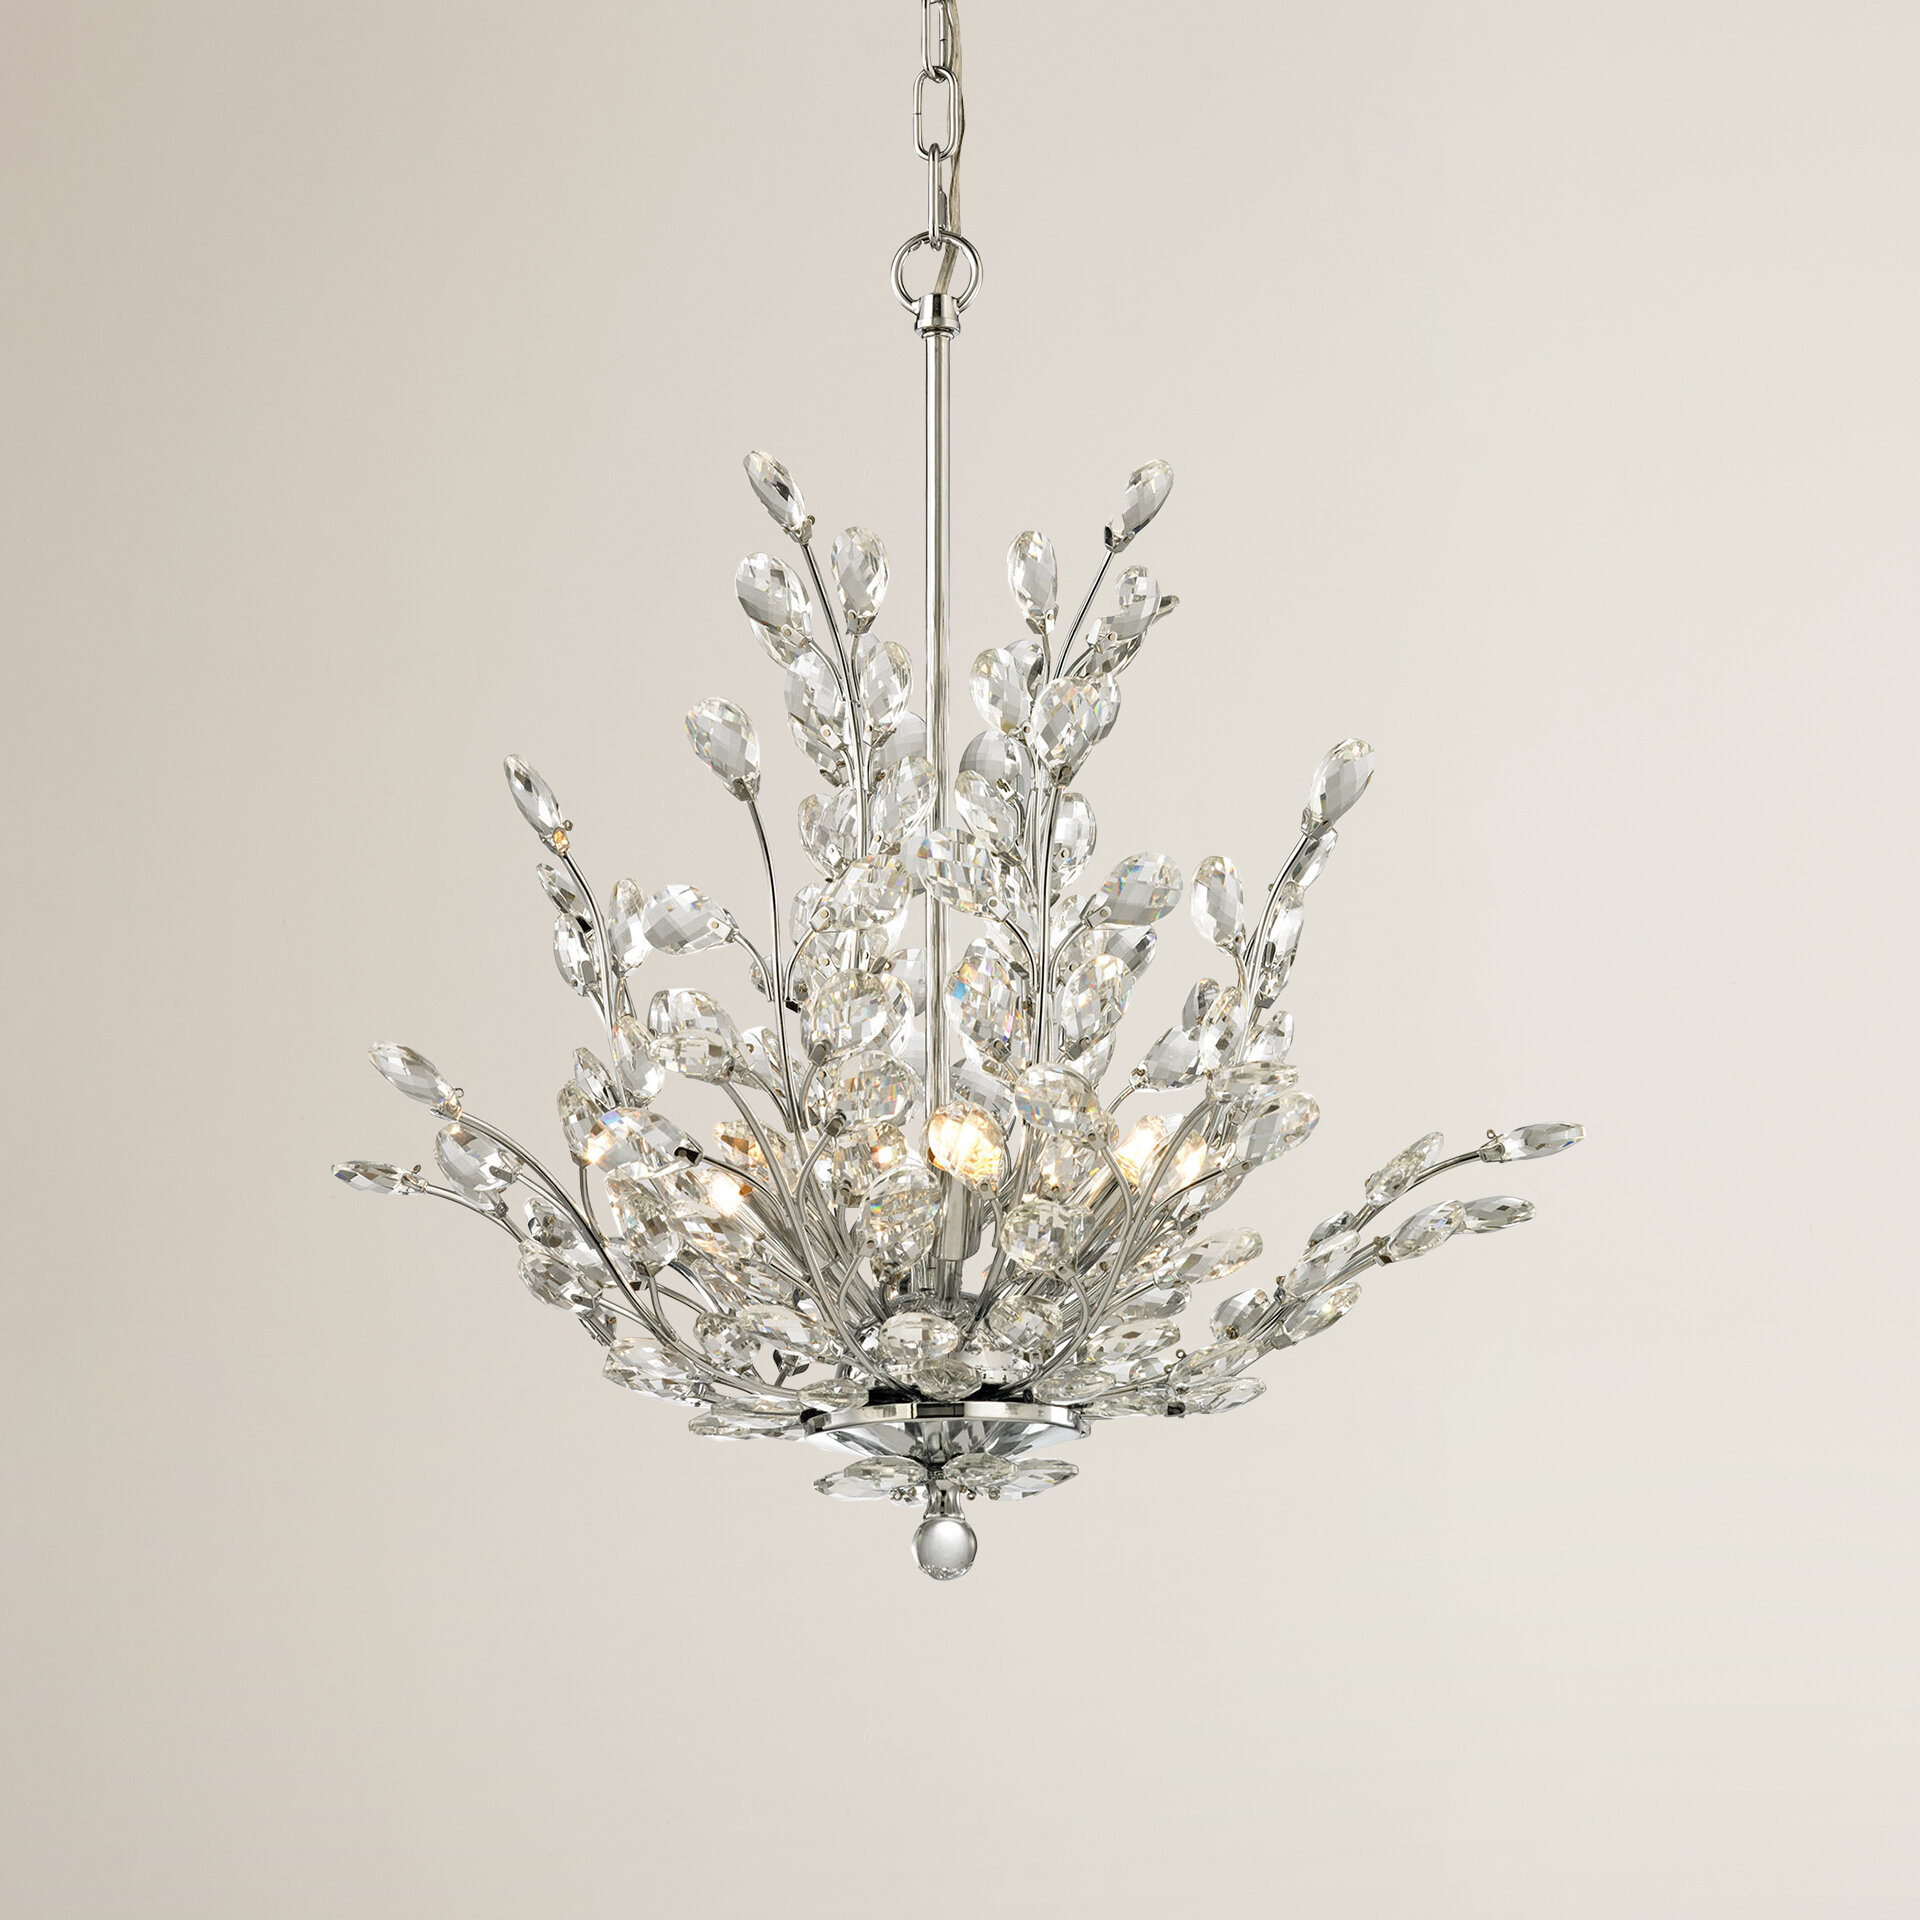 House of Hampton Ryde 6 Light Crystal Chandelier & Reviews